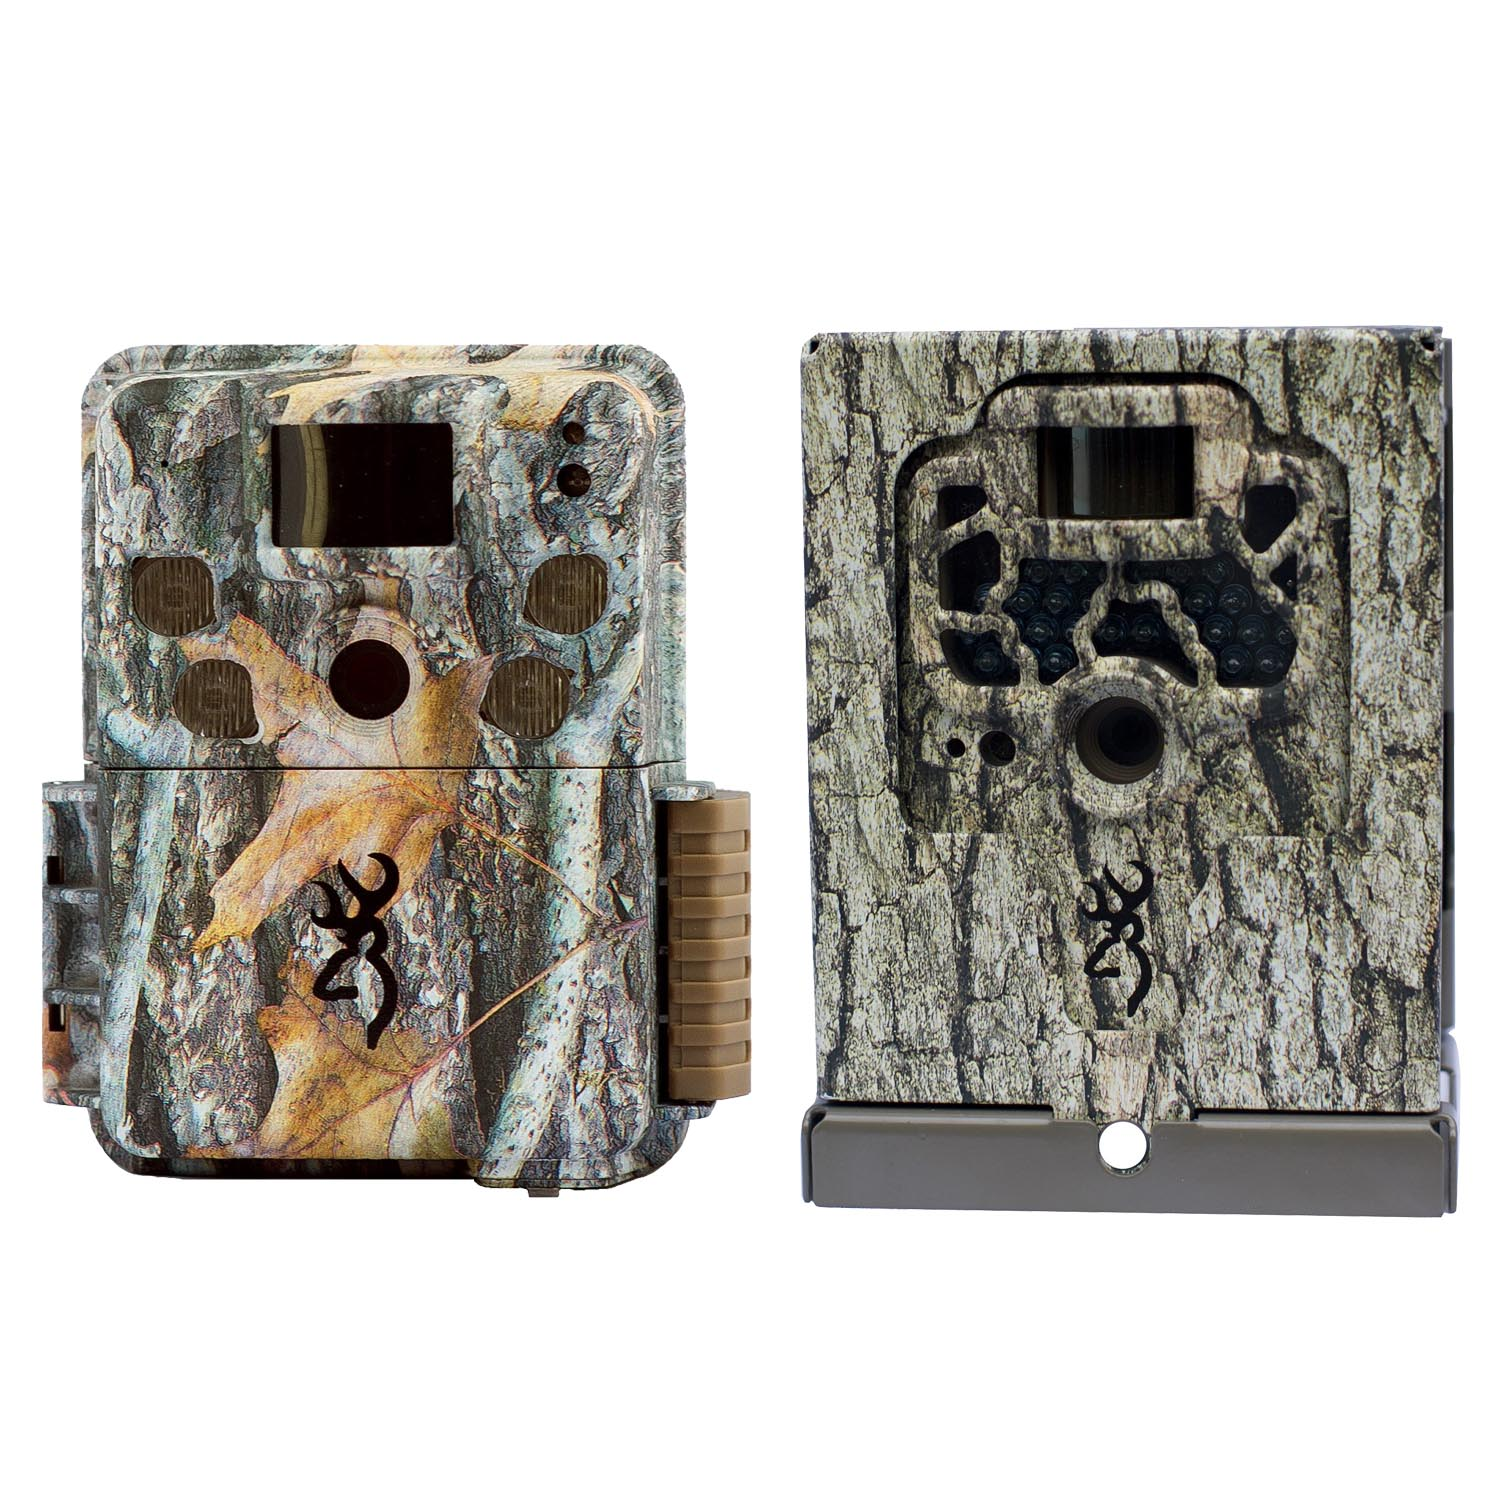 Browning Trail Cameras Strike Force Pro HD Video 18MP Game Camera + Security Box by Browning Trail Cameras